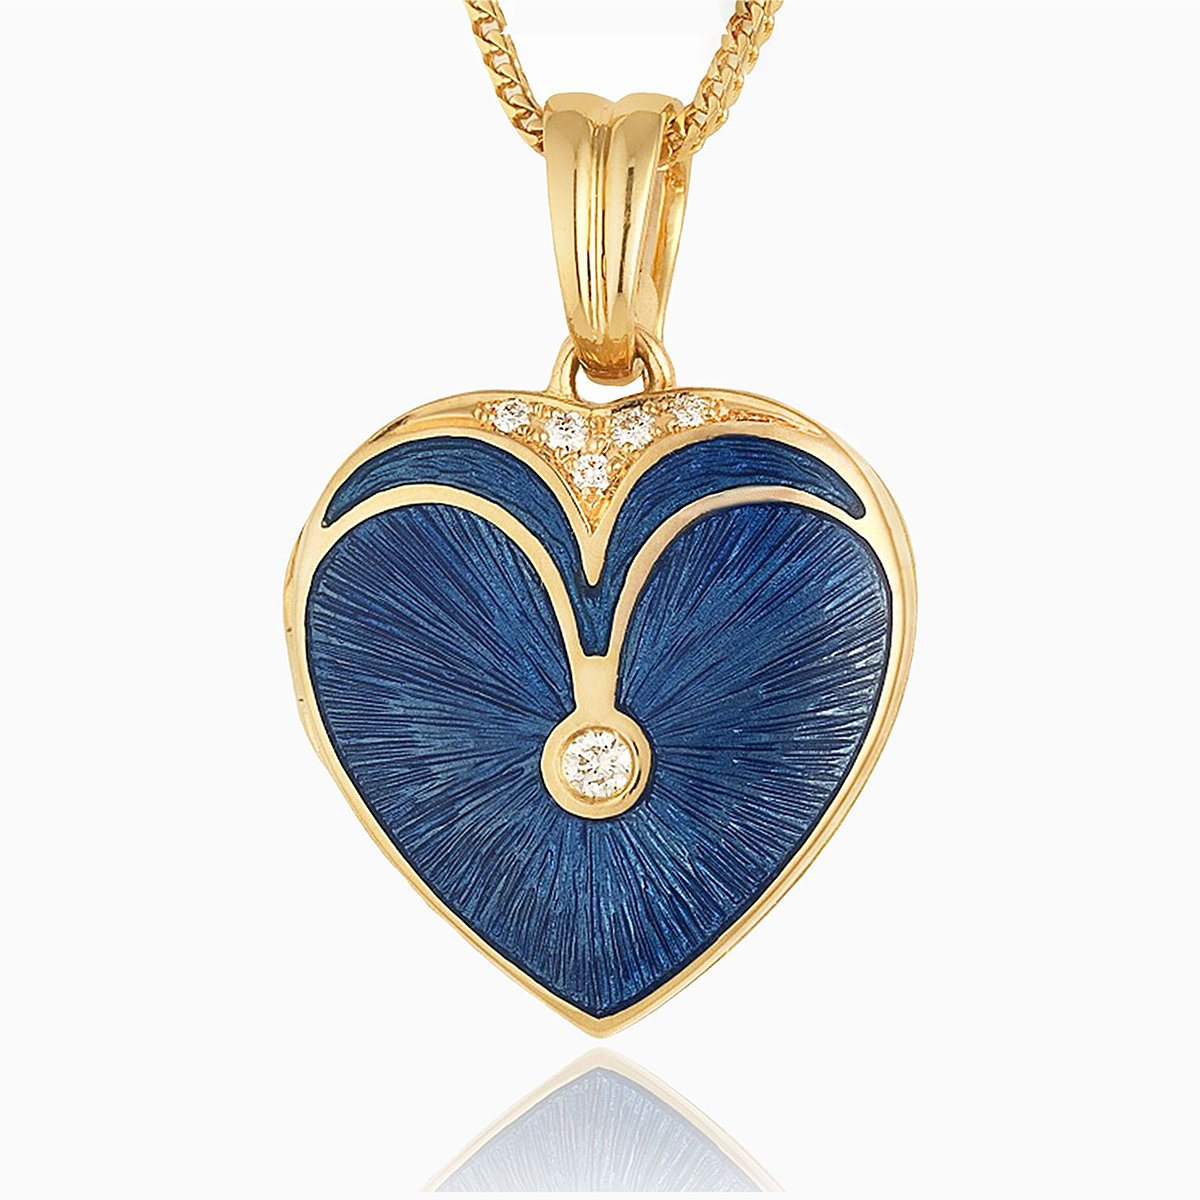 Product title: Blue Guilloche Heart Locket, product type: Locket